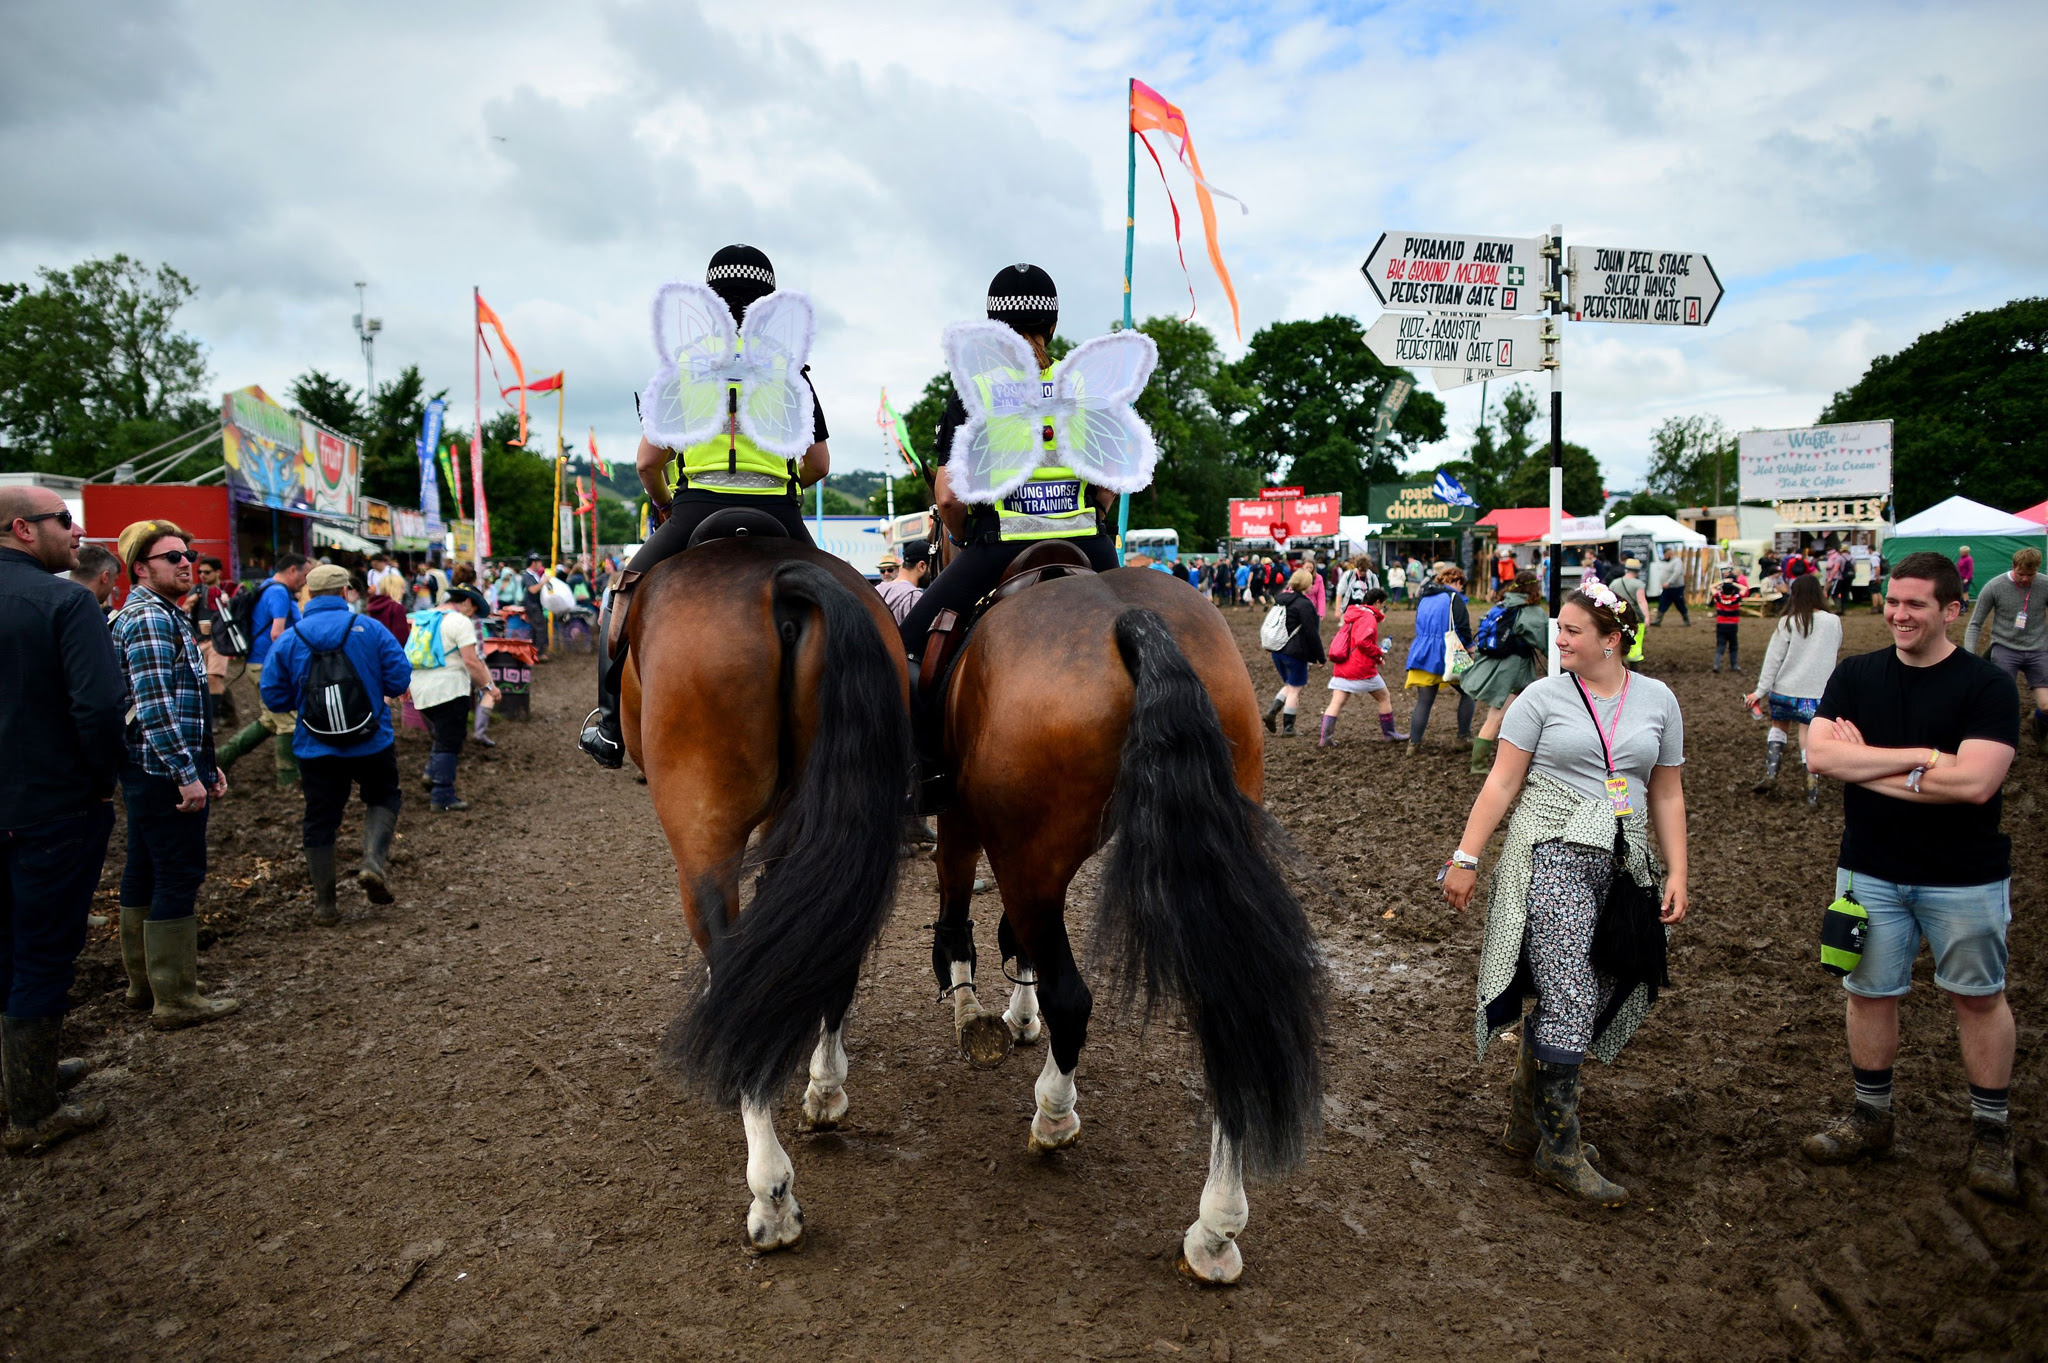 Police officers on horseback wearing angel wings at the Glastonbury Festival, at Worthy Farm in Somerset. PRESS ASSOCIATION Photo. See PA story SHOWBIZ Glastonbury. Picture date: Friday June 24, 2016. Photo credit should read: Ben Birchall/PA Wire